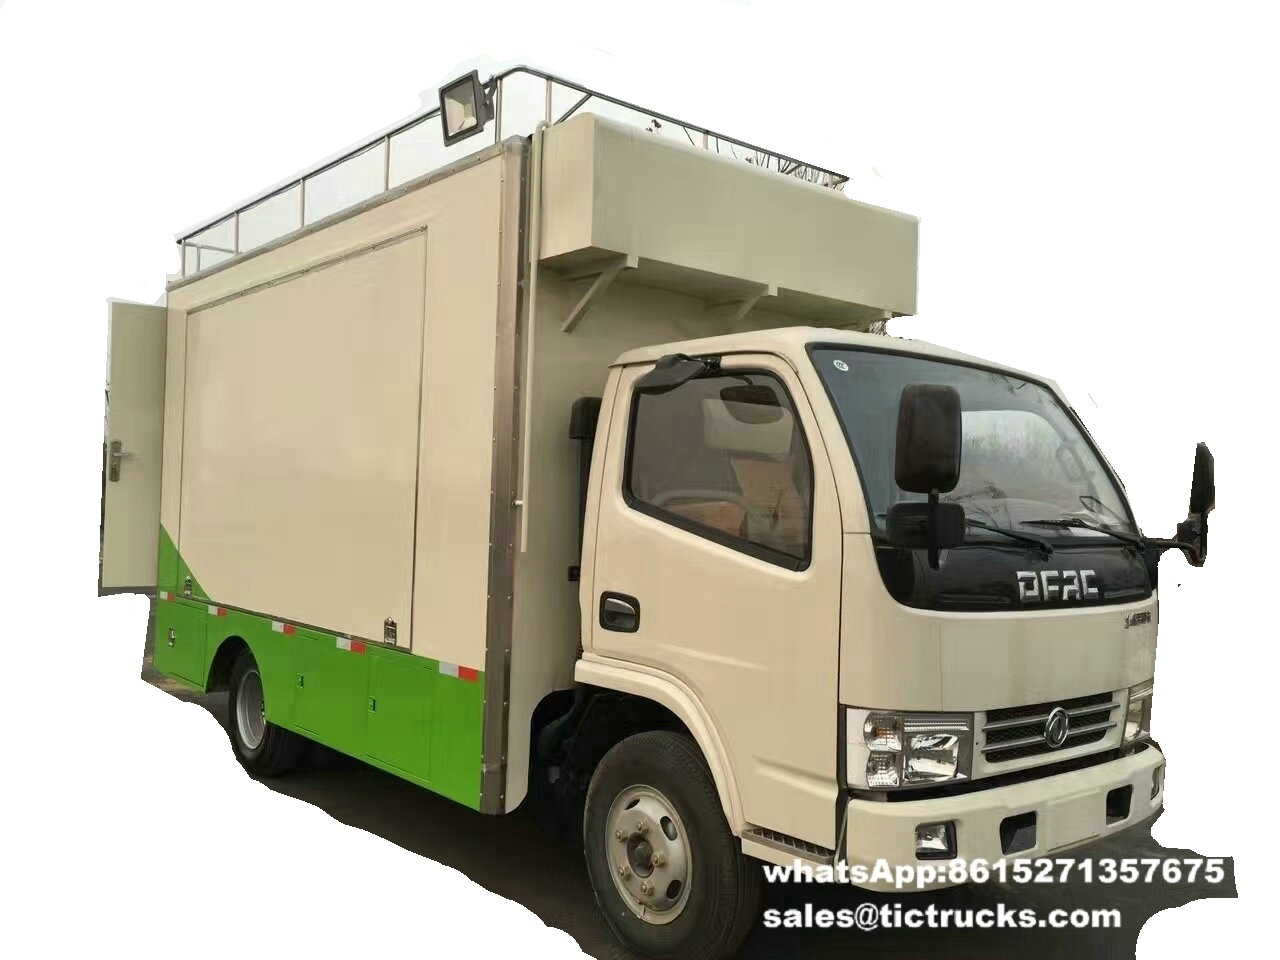 dongfeng food cooking truck-010-_1.jpg